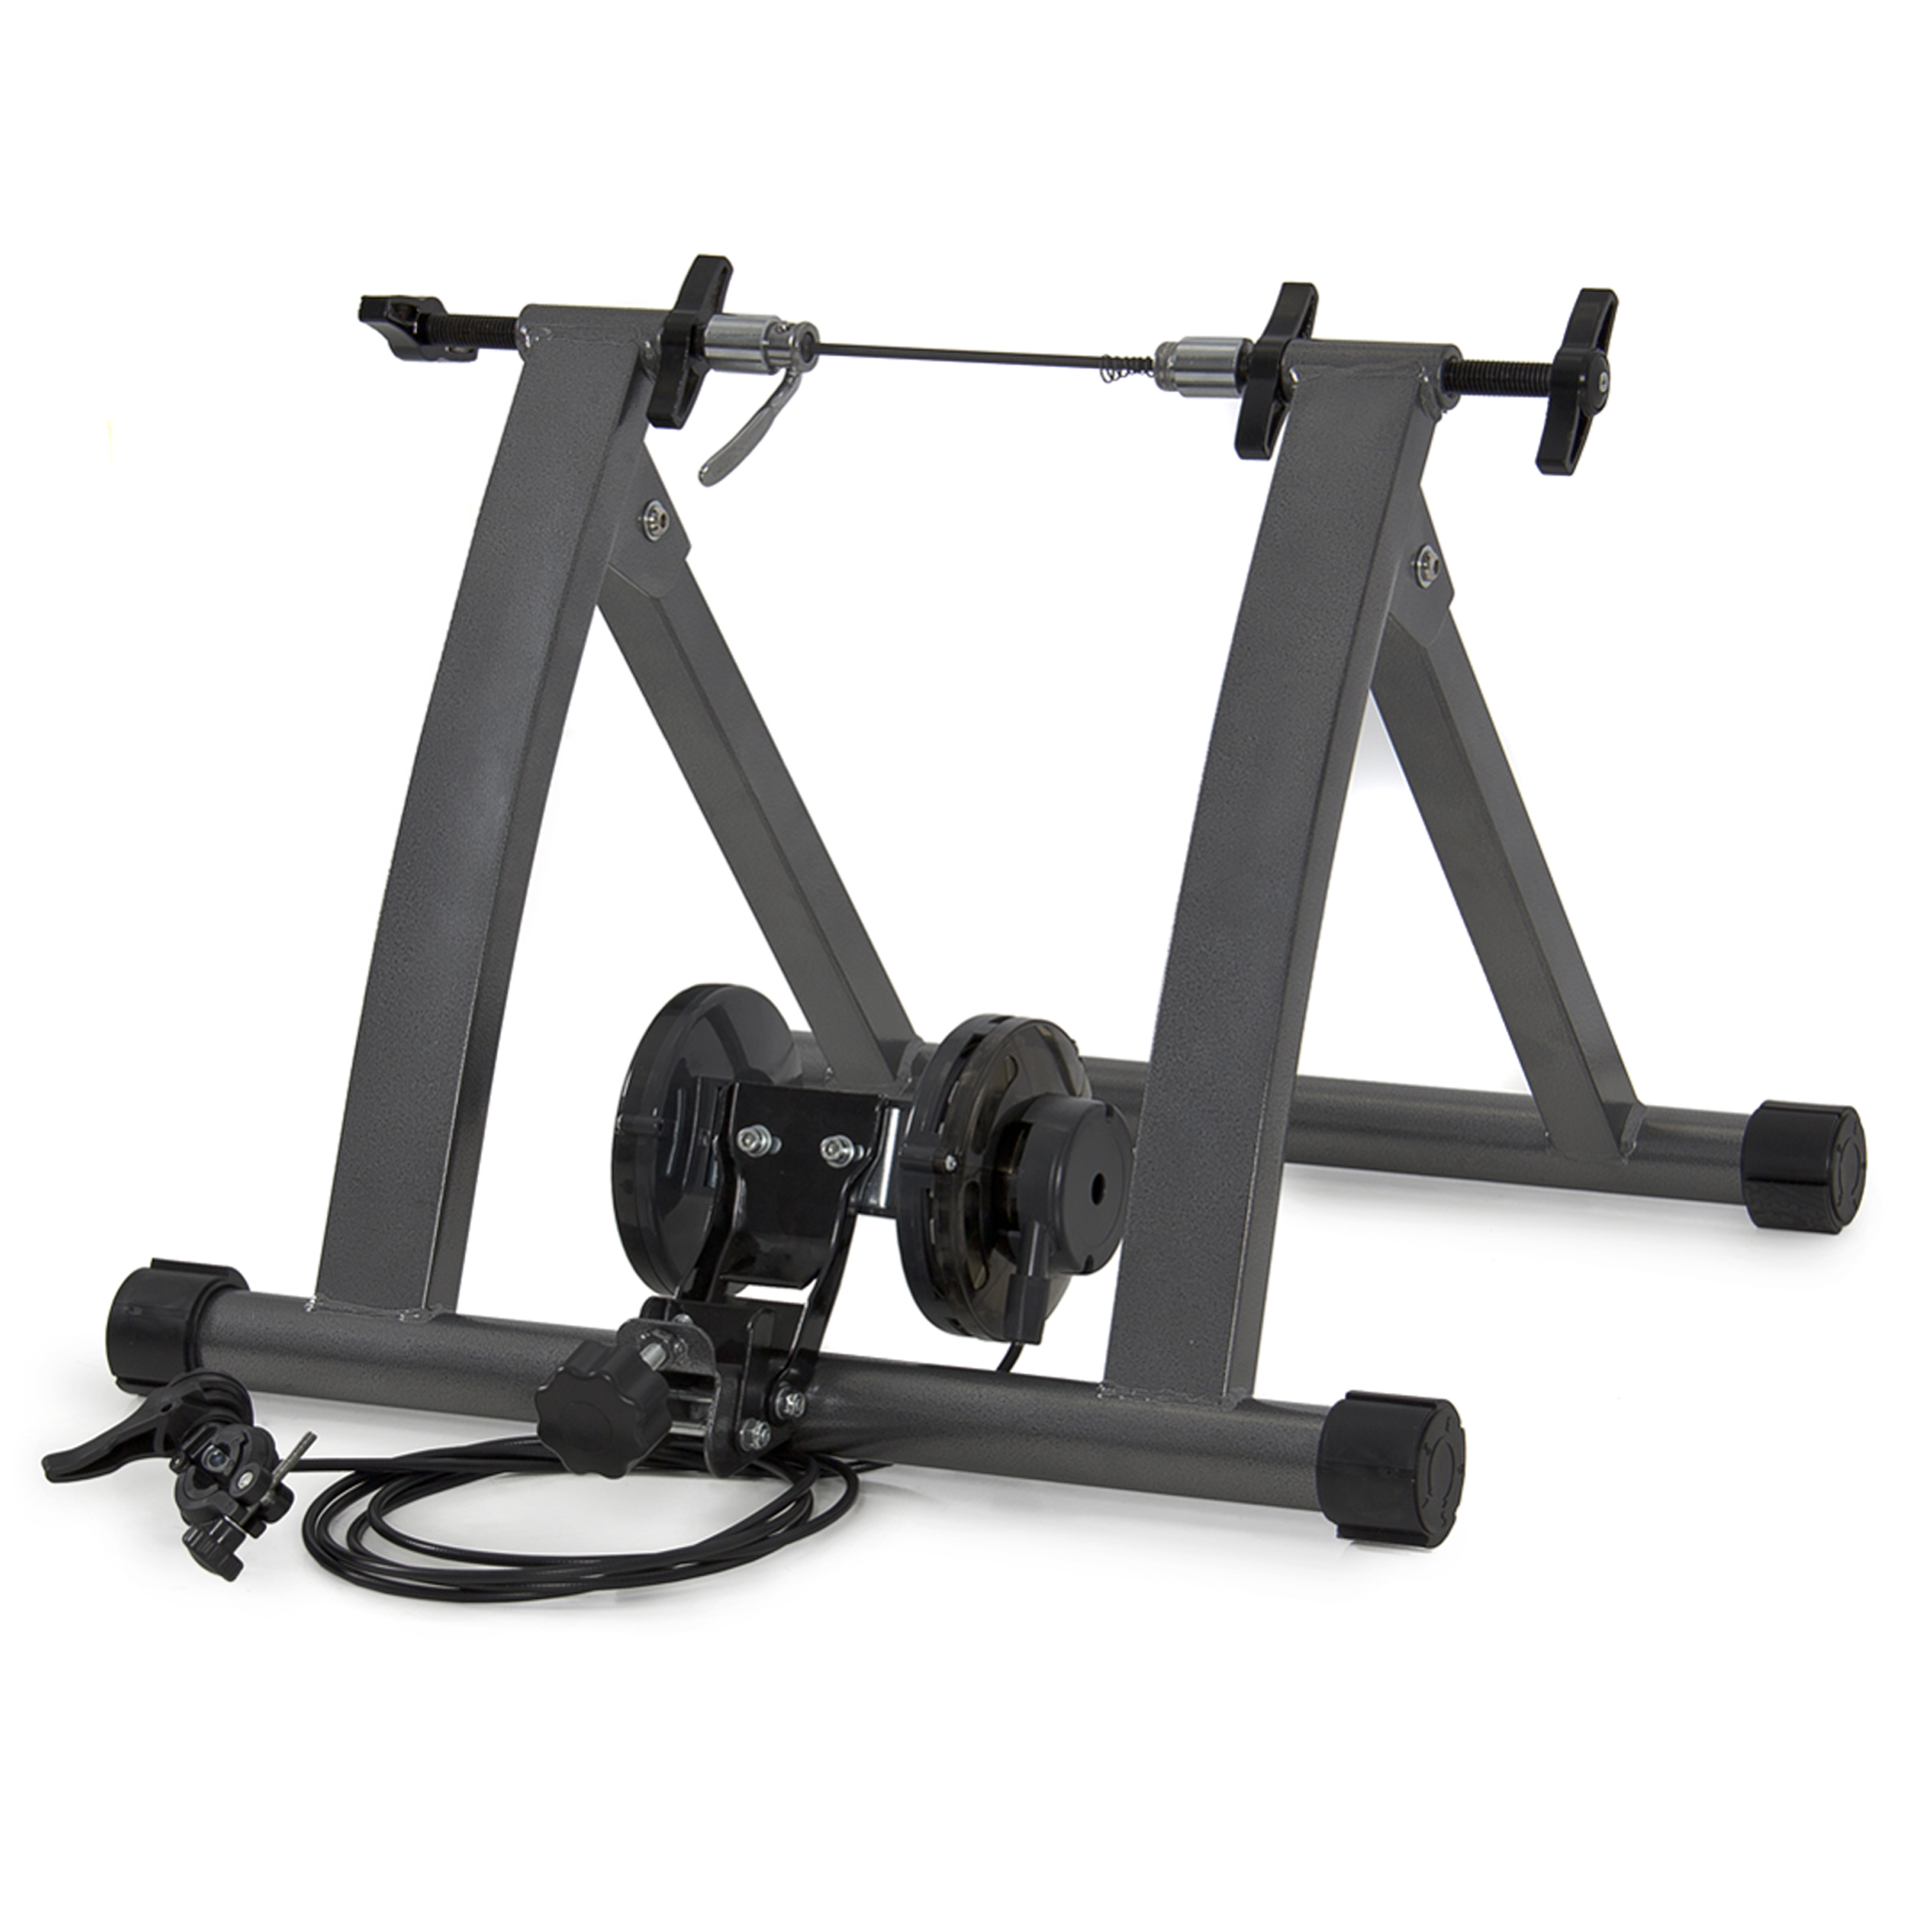 Best Choice Products Foldable Bike Trainer Stand w/ 5 Resistance Levels - Gray - Walmart.com